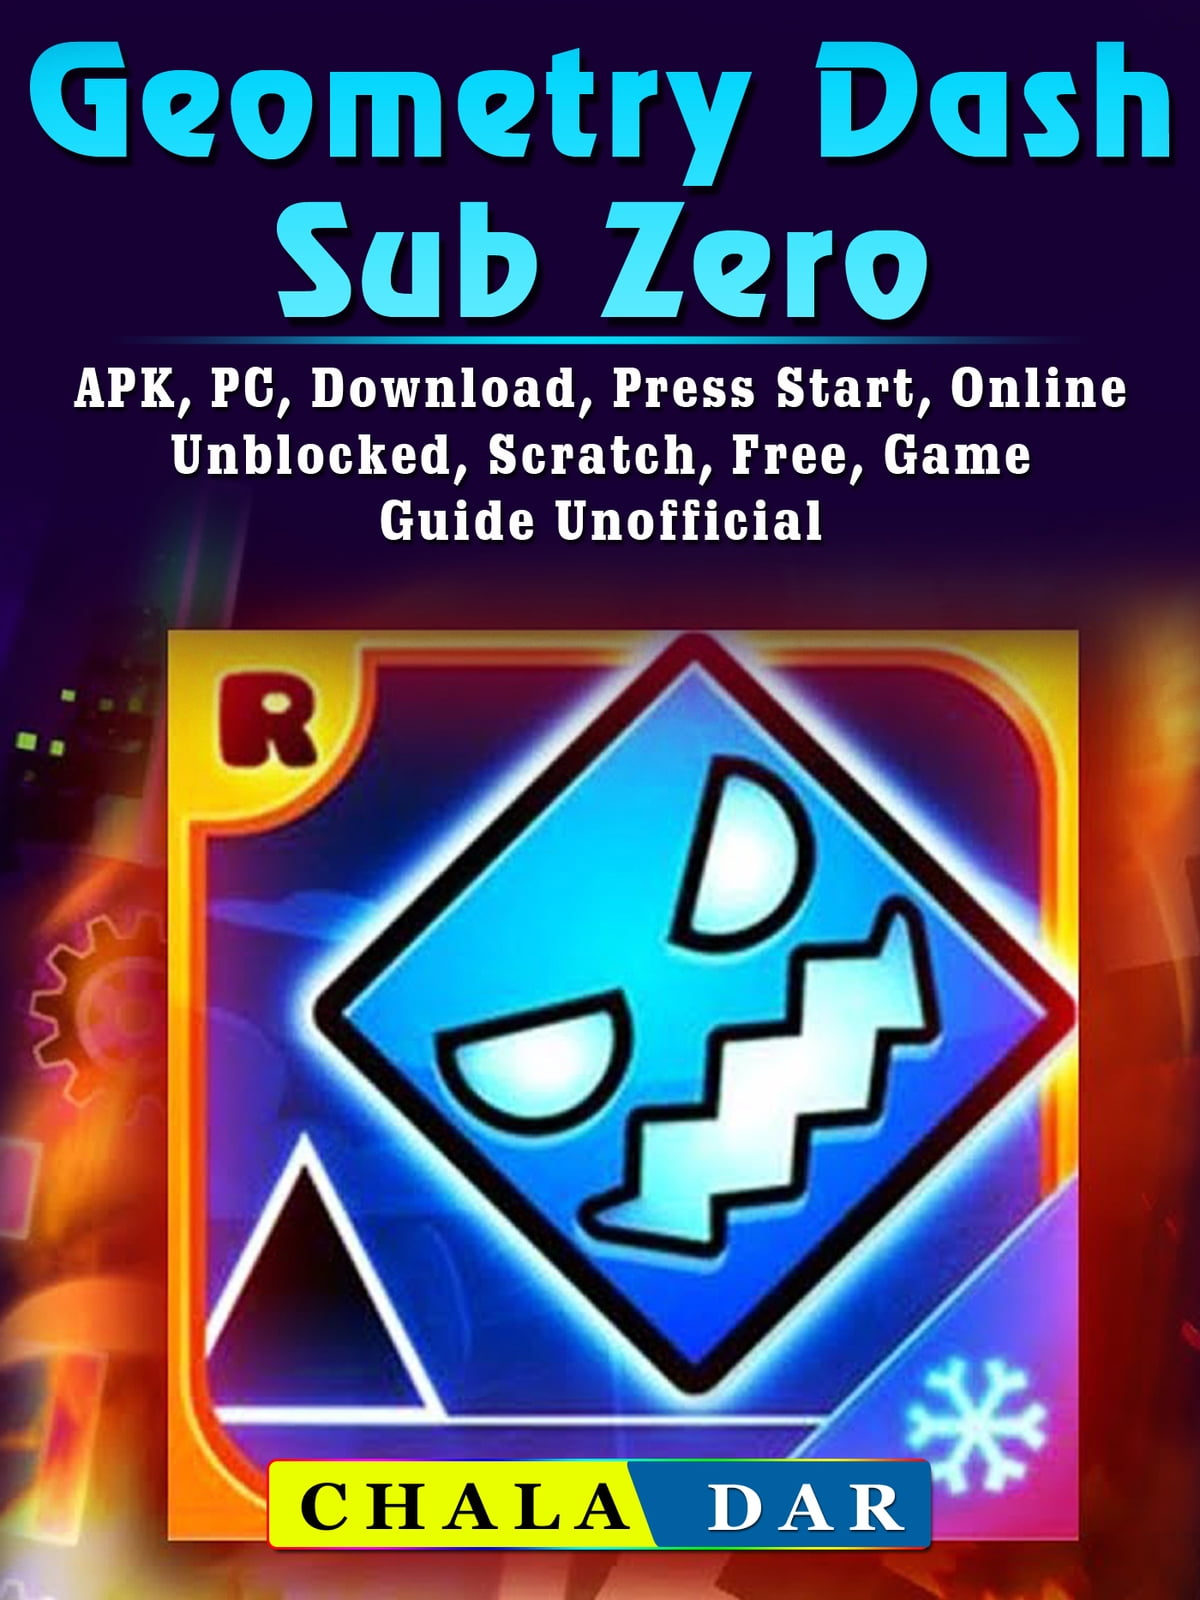 Geometry Dash Sub Zero Apk Pc Download Press Start Online Unblocked Scratch Free Game Guide Unofficial Ebook By Chala Dar 9781387683925 Rakuten Kobo United States